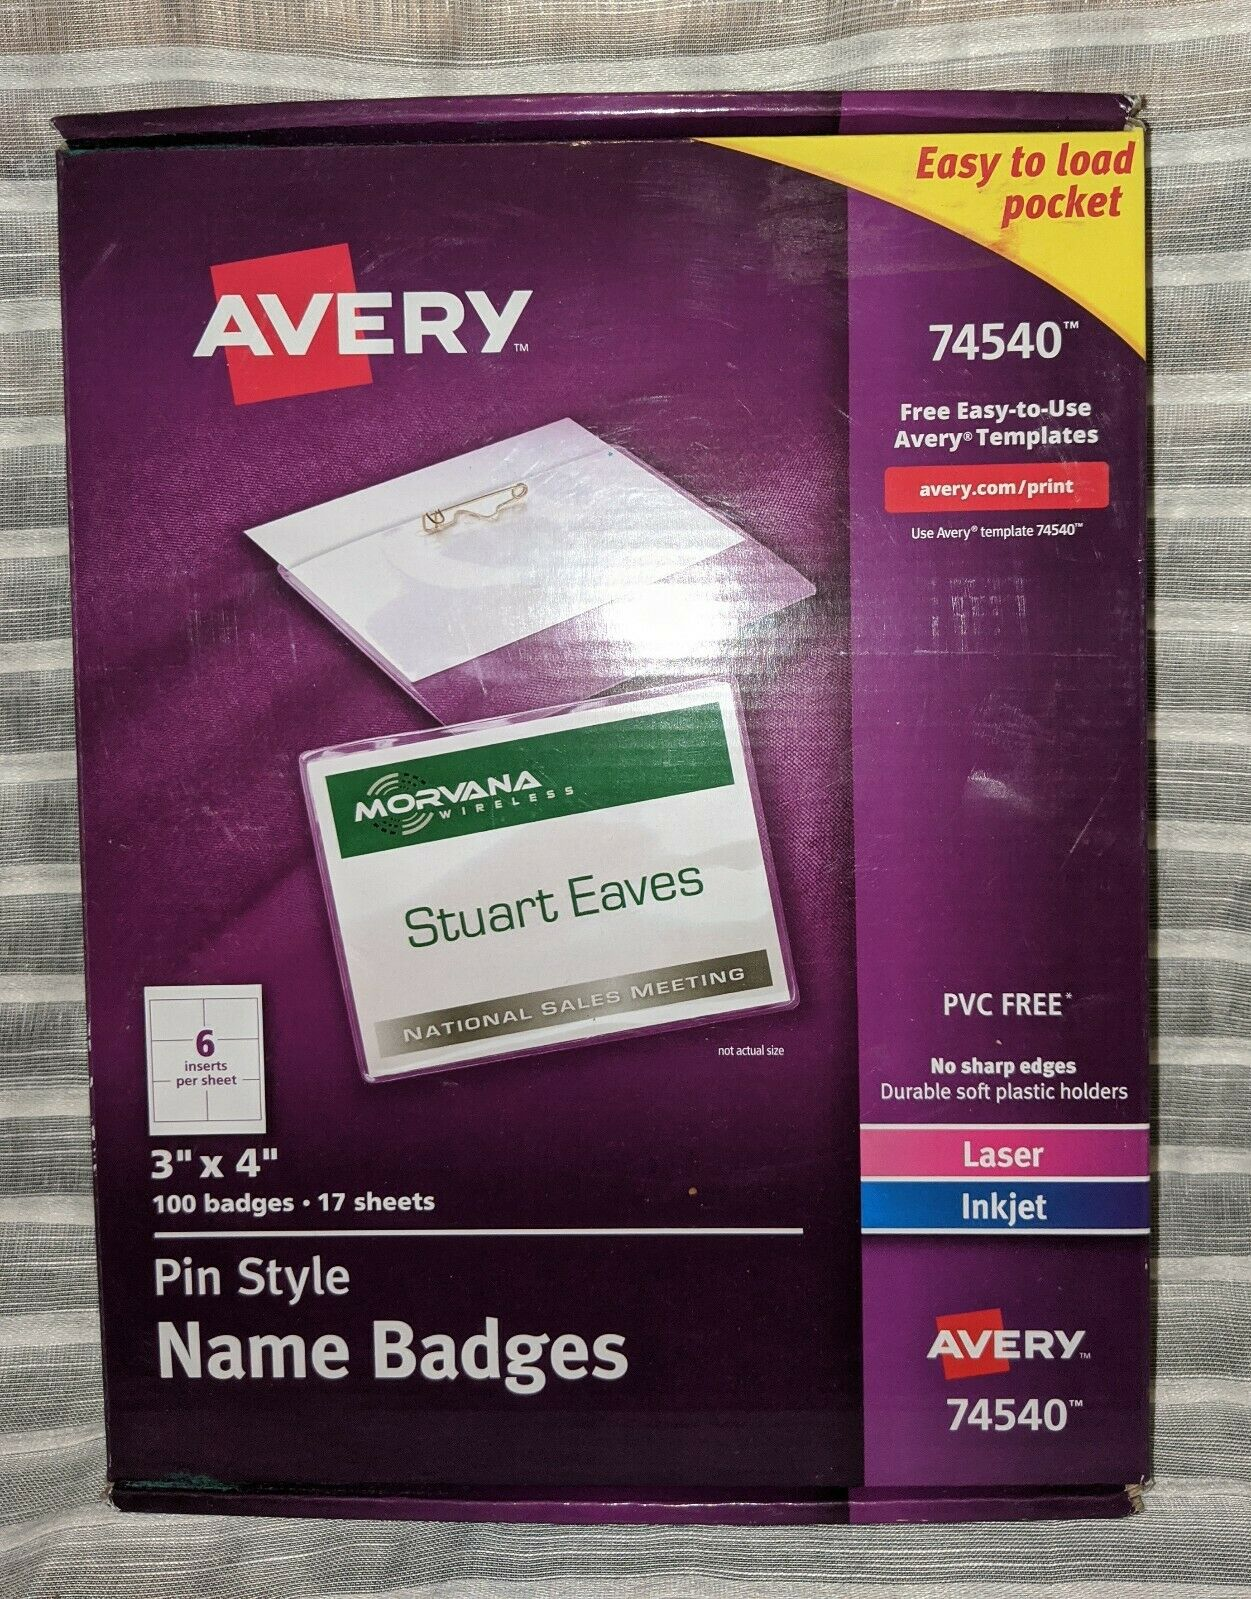 Avery Pin-Style Name Badge Holders with Inserts, 3 x 4, 100 Badges (AVE74540)